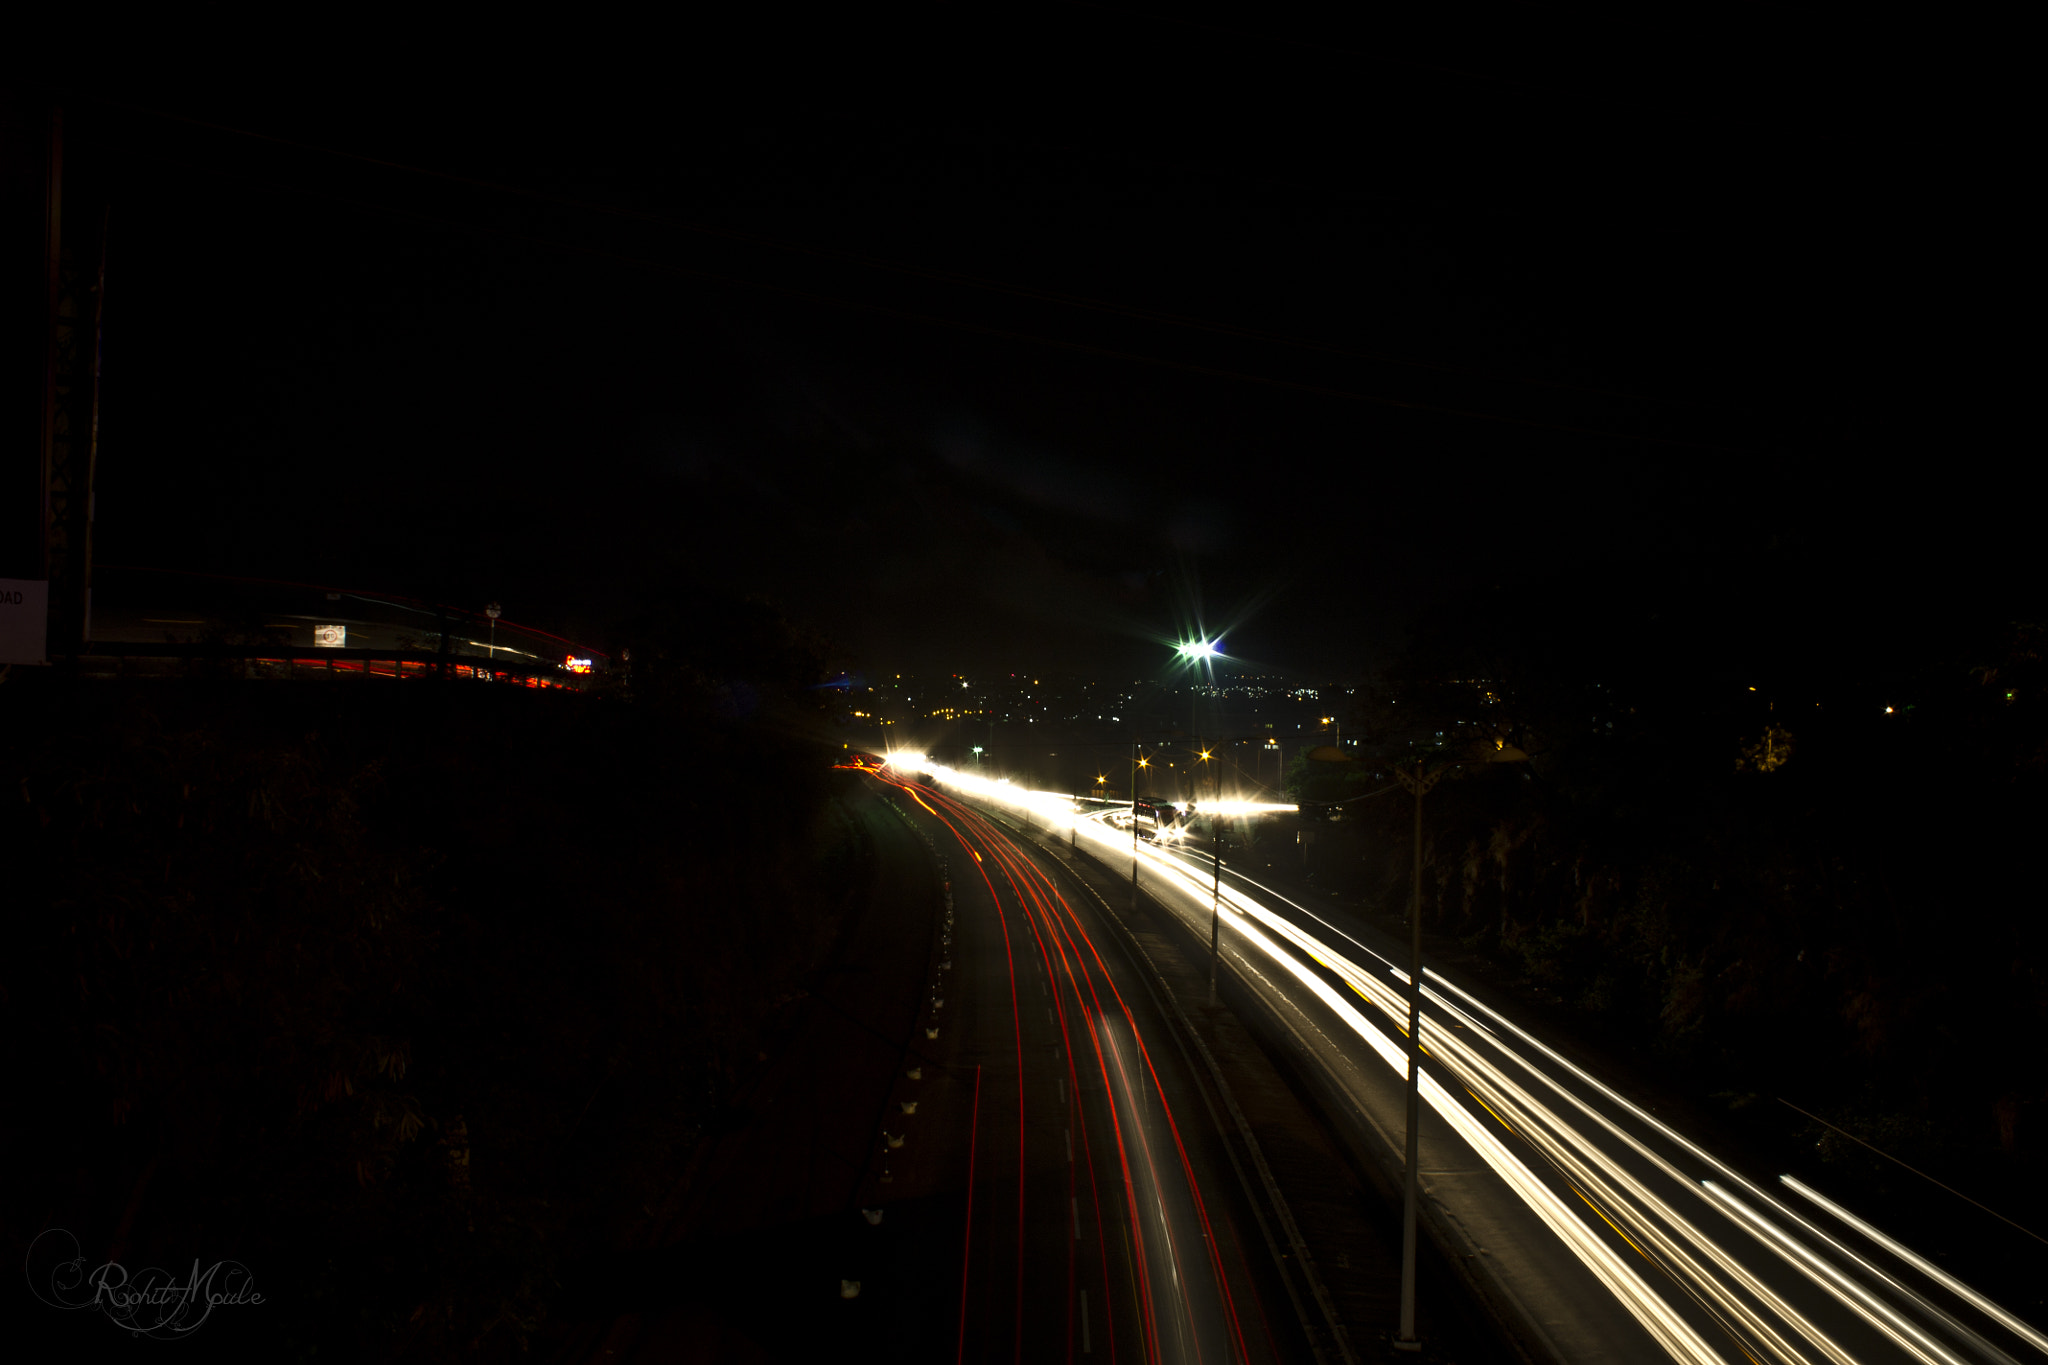 Photograph Highway by Rohit Mule on 500px